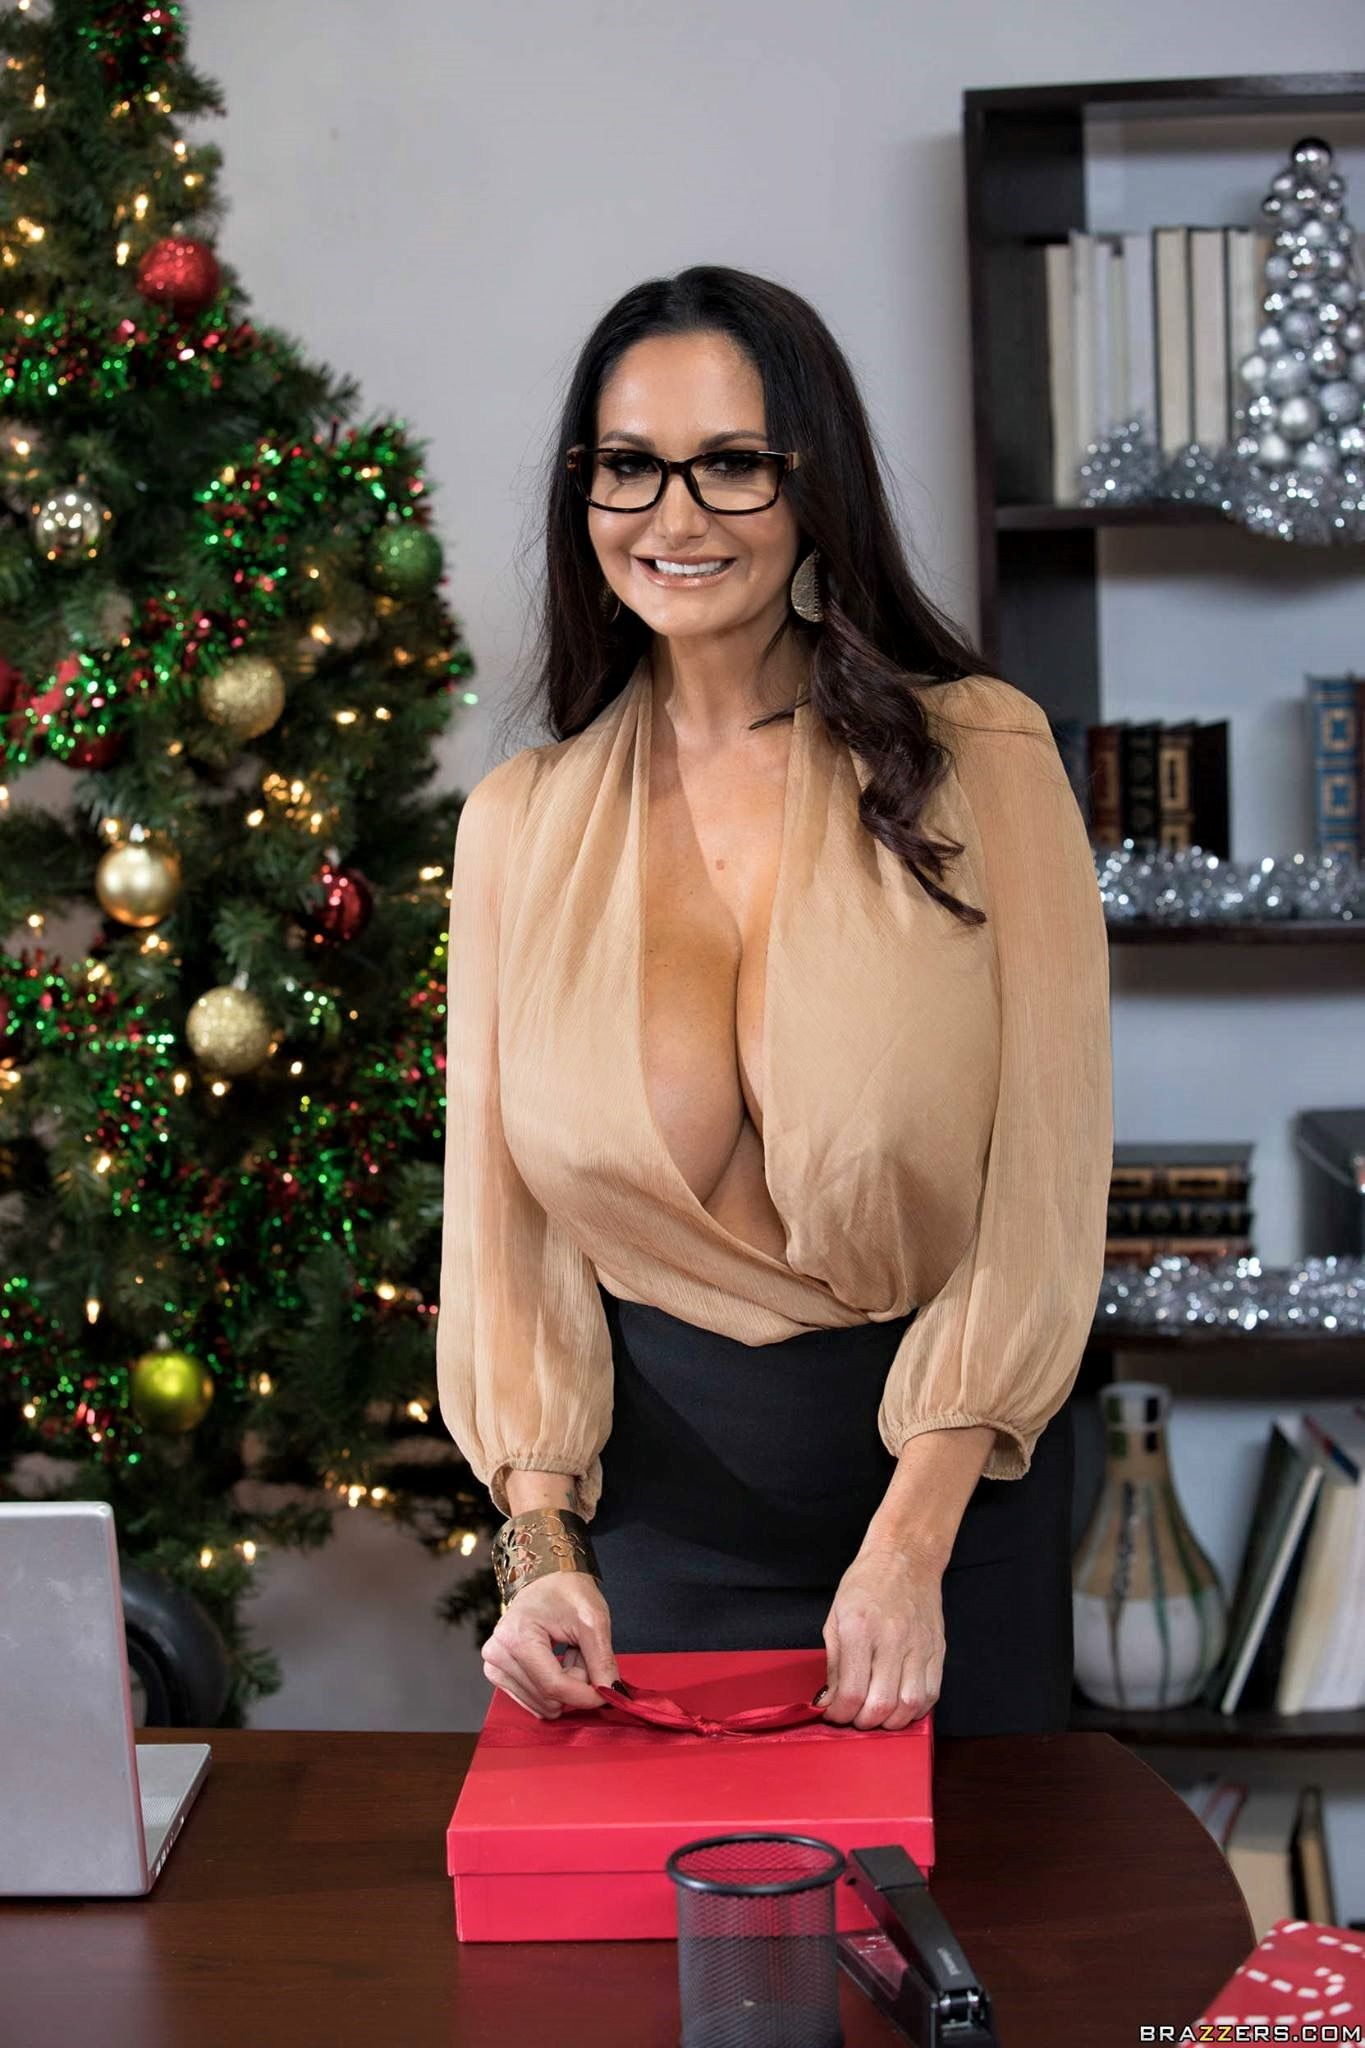 Ava Addams Christmas.Pin On Justin Bieber